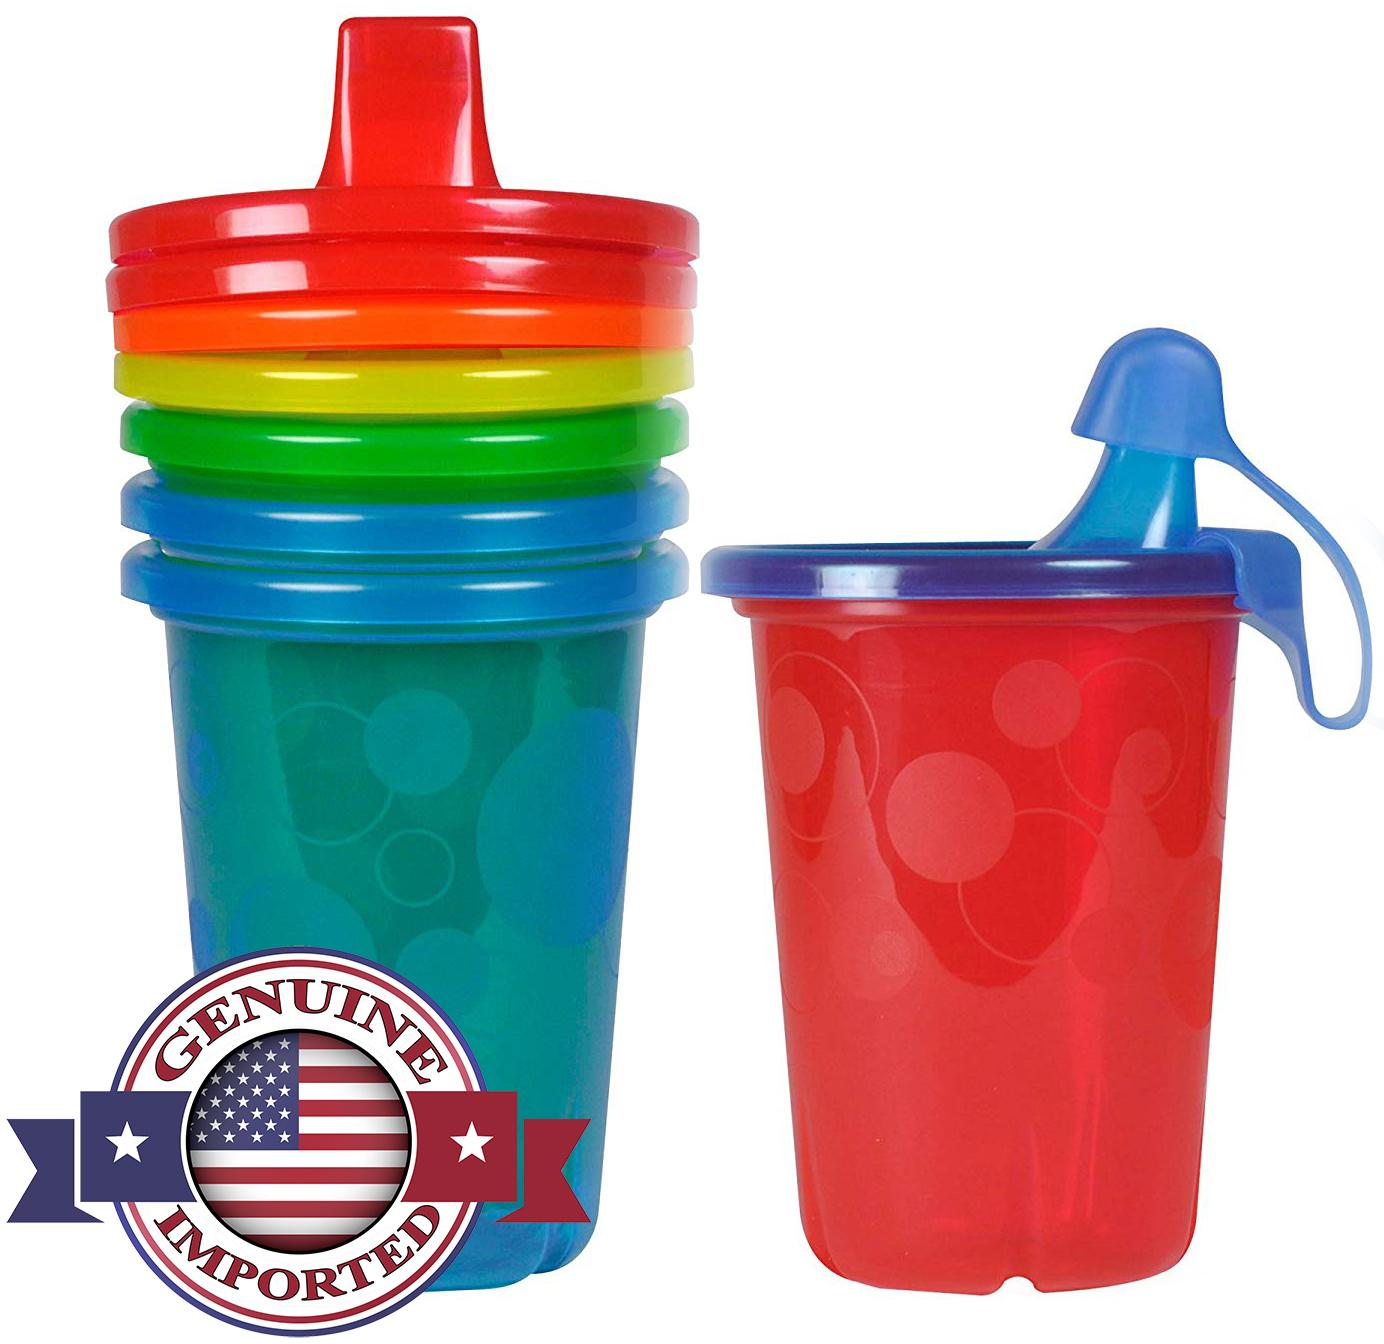 The First Years Sippy Cups - Take & Toss - 10 Ounce or 296ml - Spill